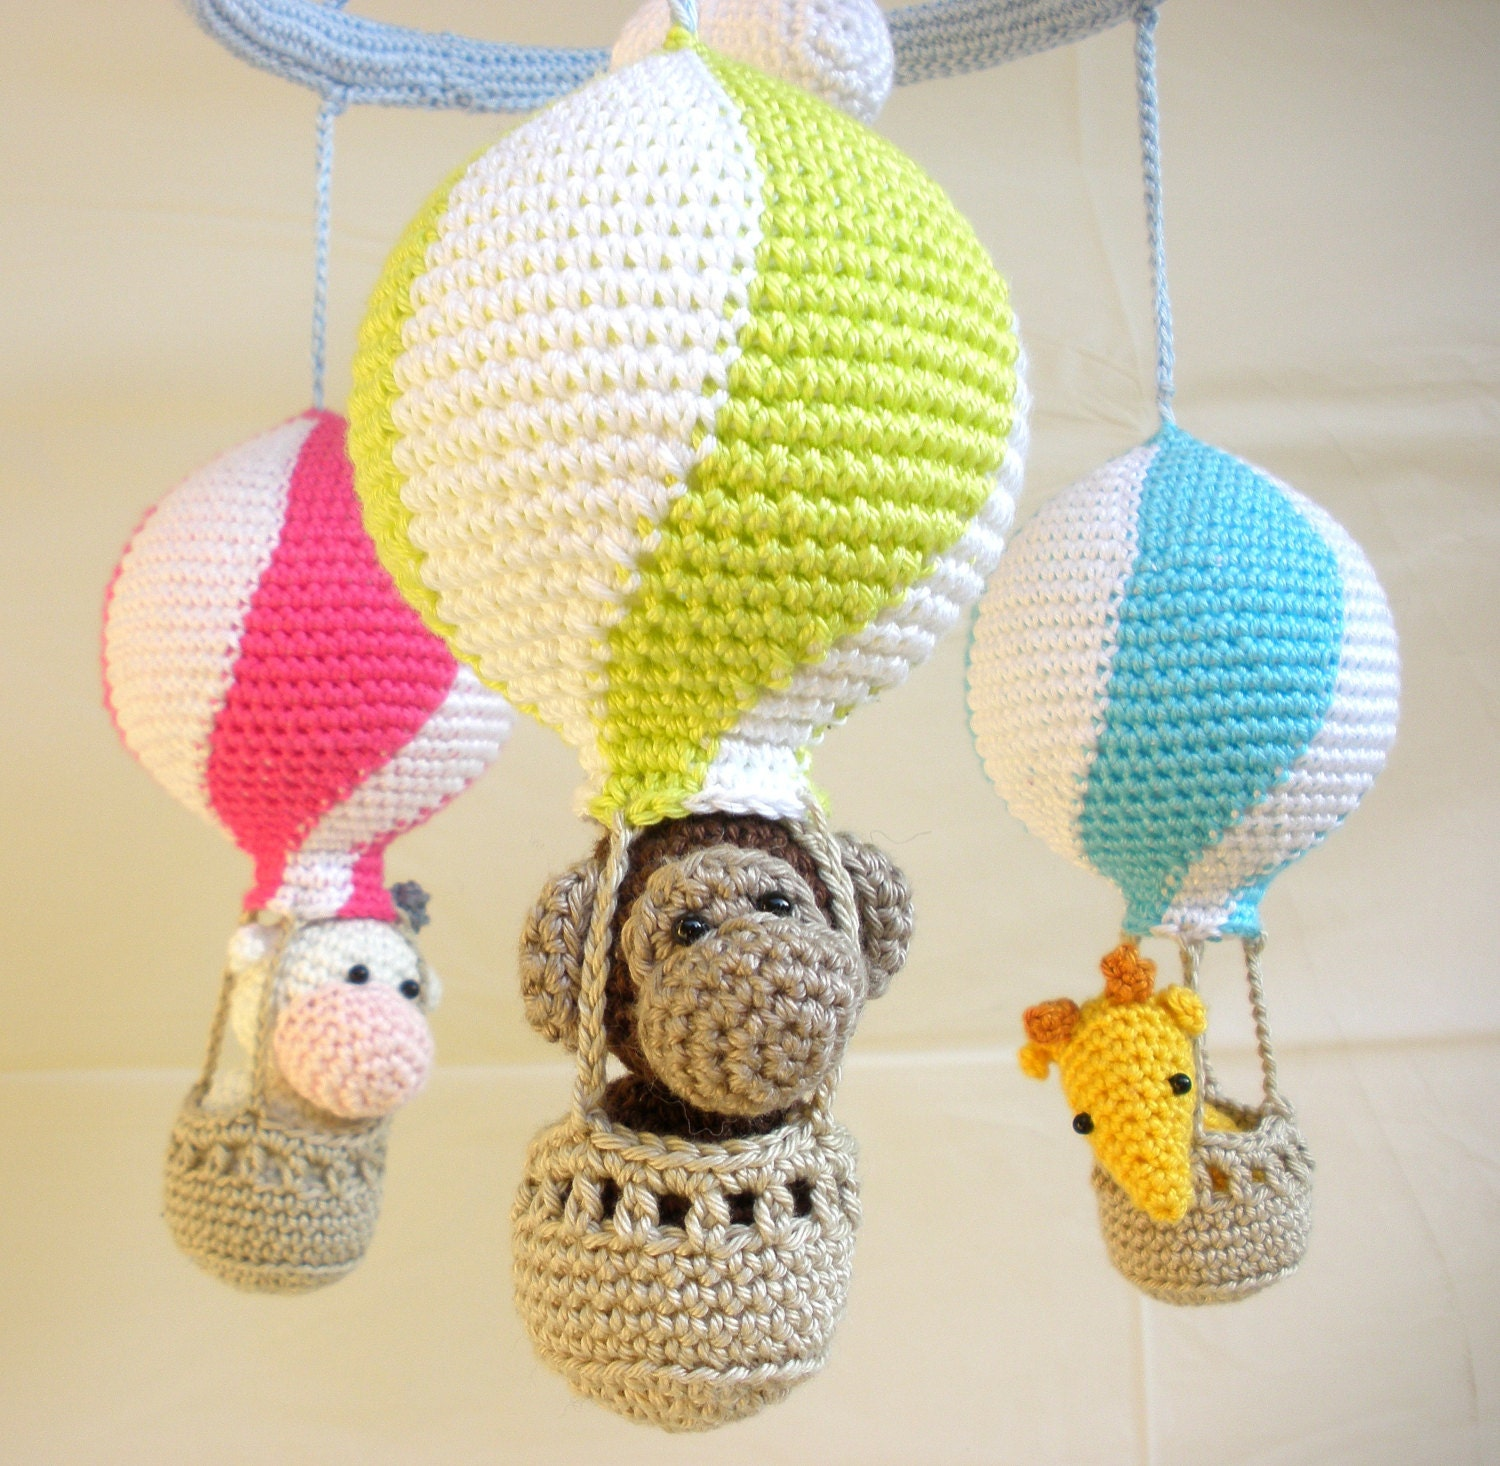 Crochet Patterns For Baby Mittens : Baby Gear Galore: Hot air balloon mobile - Crochet mobile ...